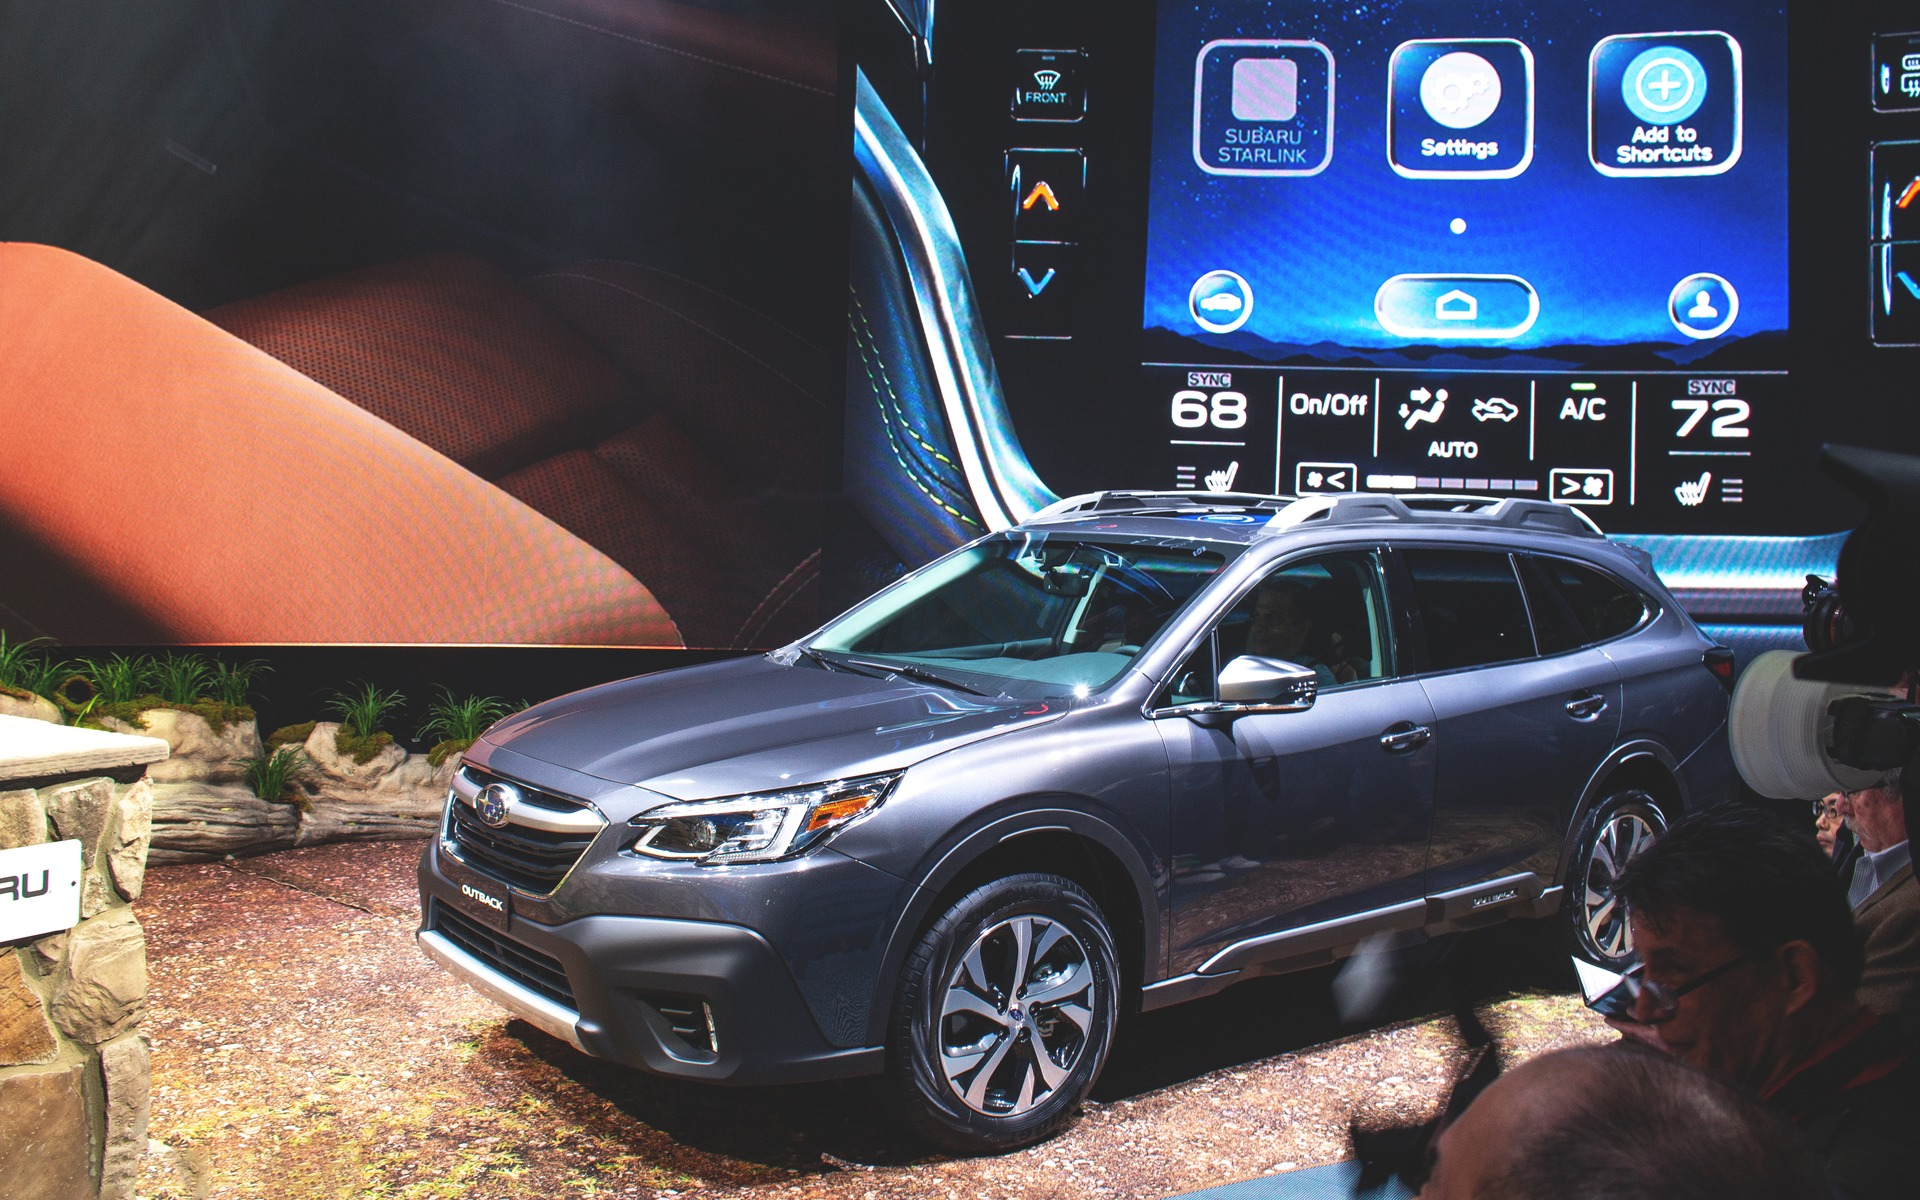 91 All New New Generation 2020 Subaru Outback Rumors